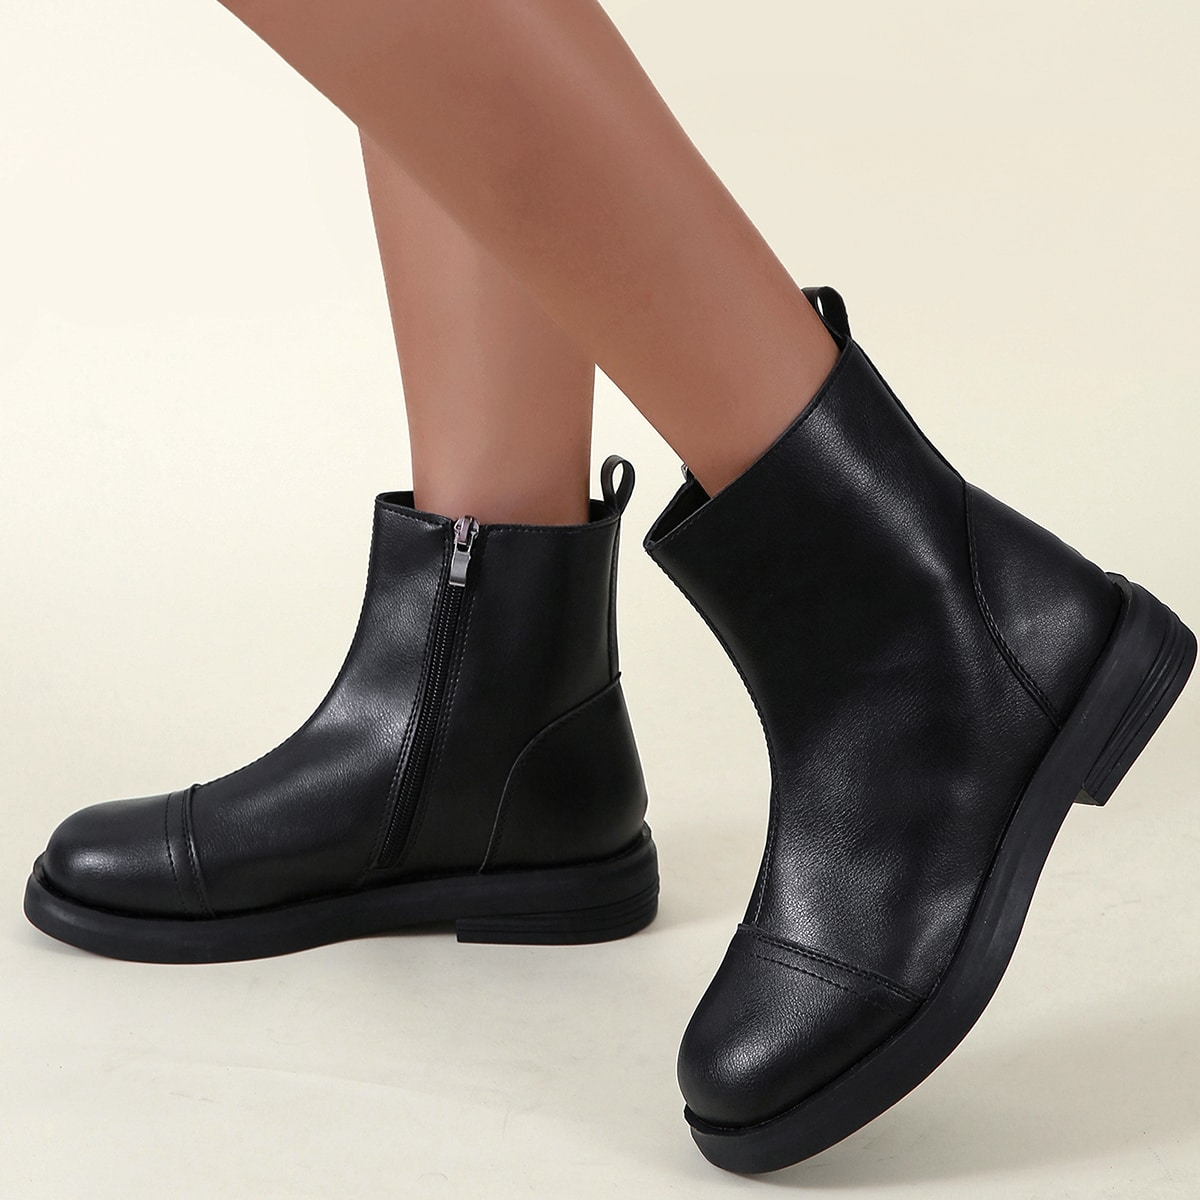 Minimalist Side Zipper Boots, SHEIN  - buy with discount